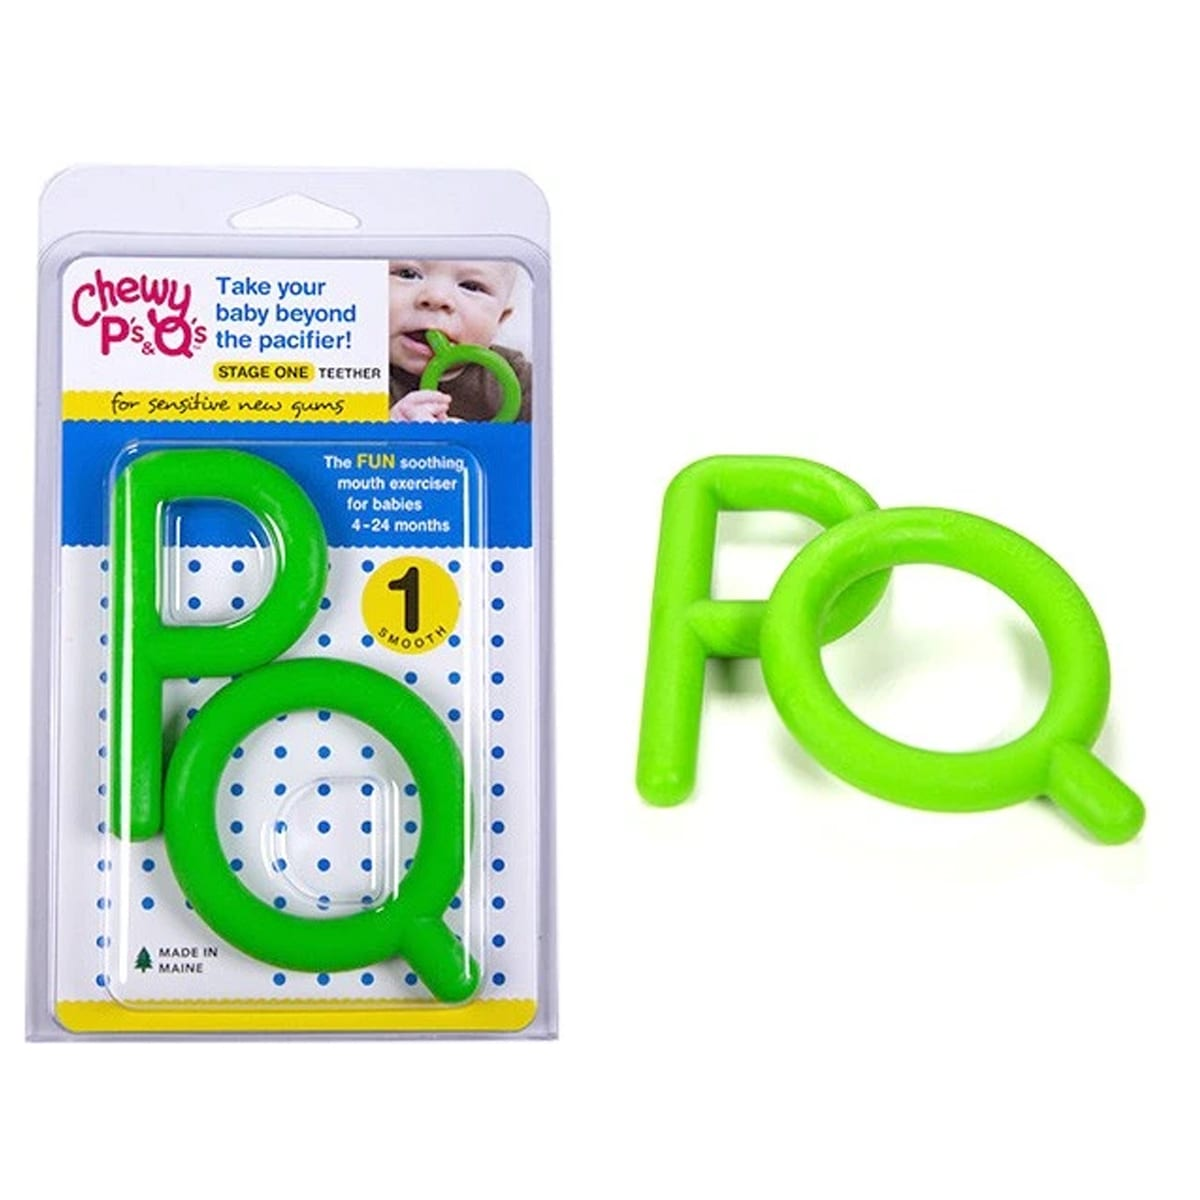 PS & QS - GREEN- STAGE 1 TEETHER - CHEWY TUBE